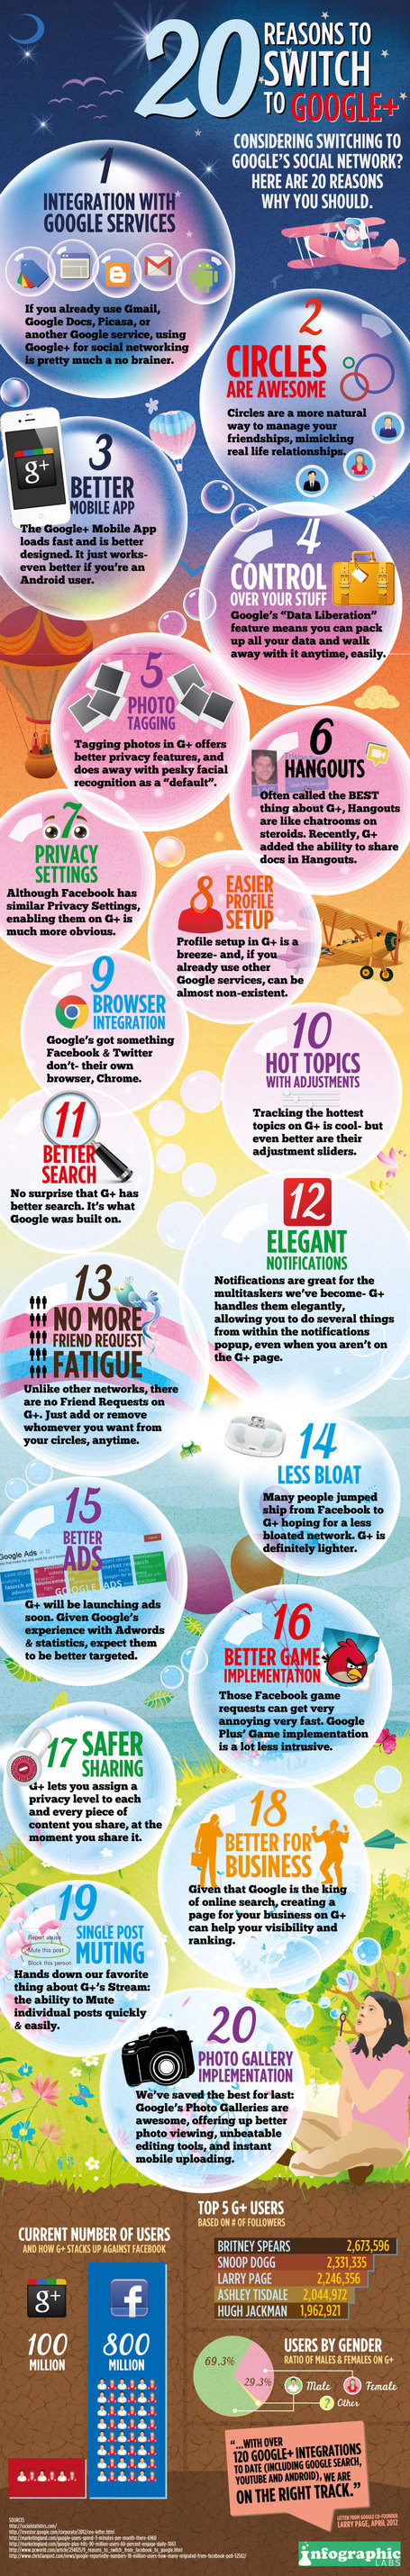 20 Reasons Why you Should Use Google Plus [Infographic] | Aprendiendo a Distancia | Scoop.it